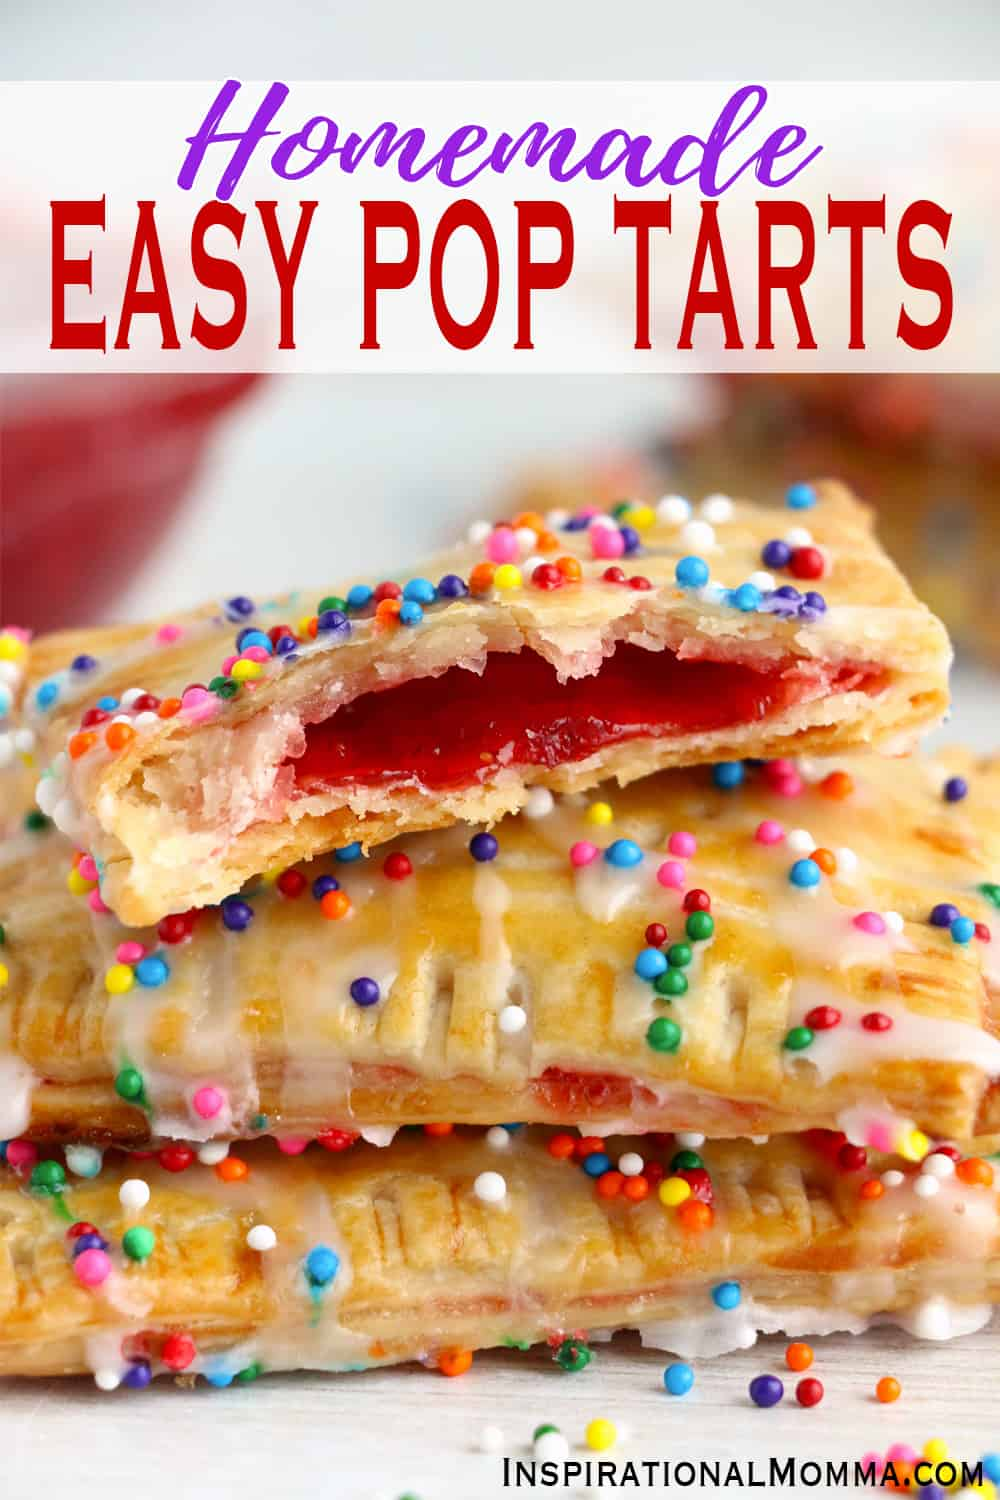 Homemade Easy Pop Tarts are made with 5 ingredients and packed with flavor. A light, flaky crust filled with your choice of fruit filling!